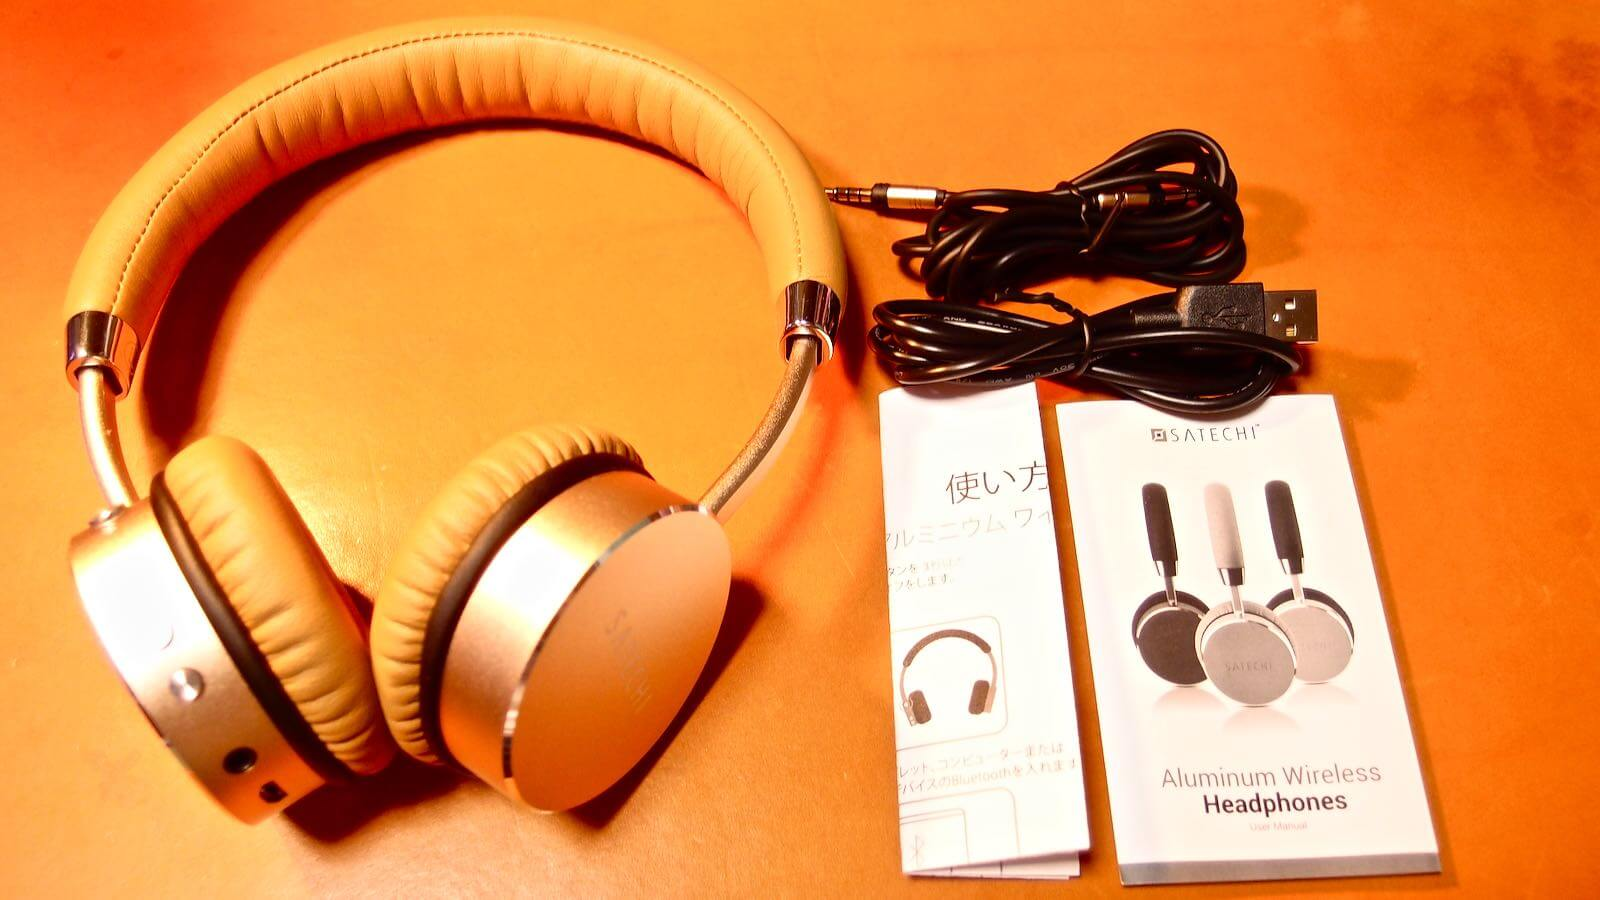 0157 Satechi wireless headphone ST AHP Review 05